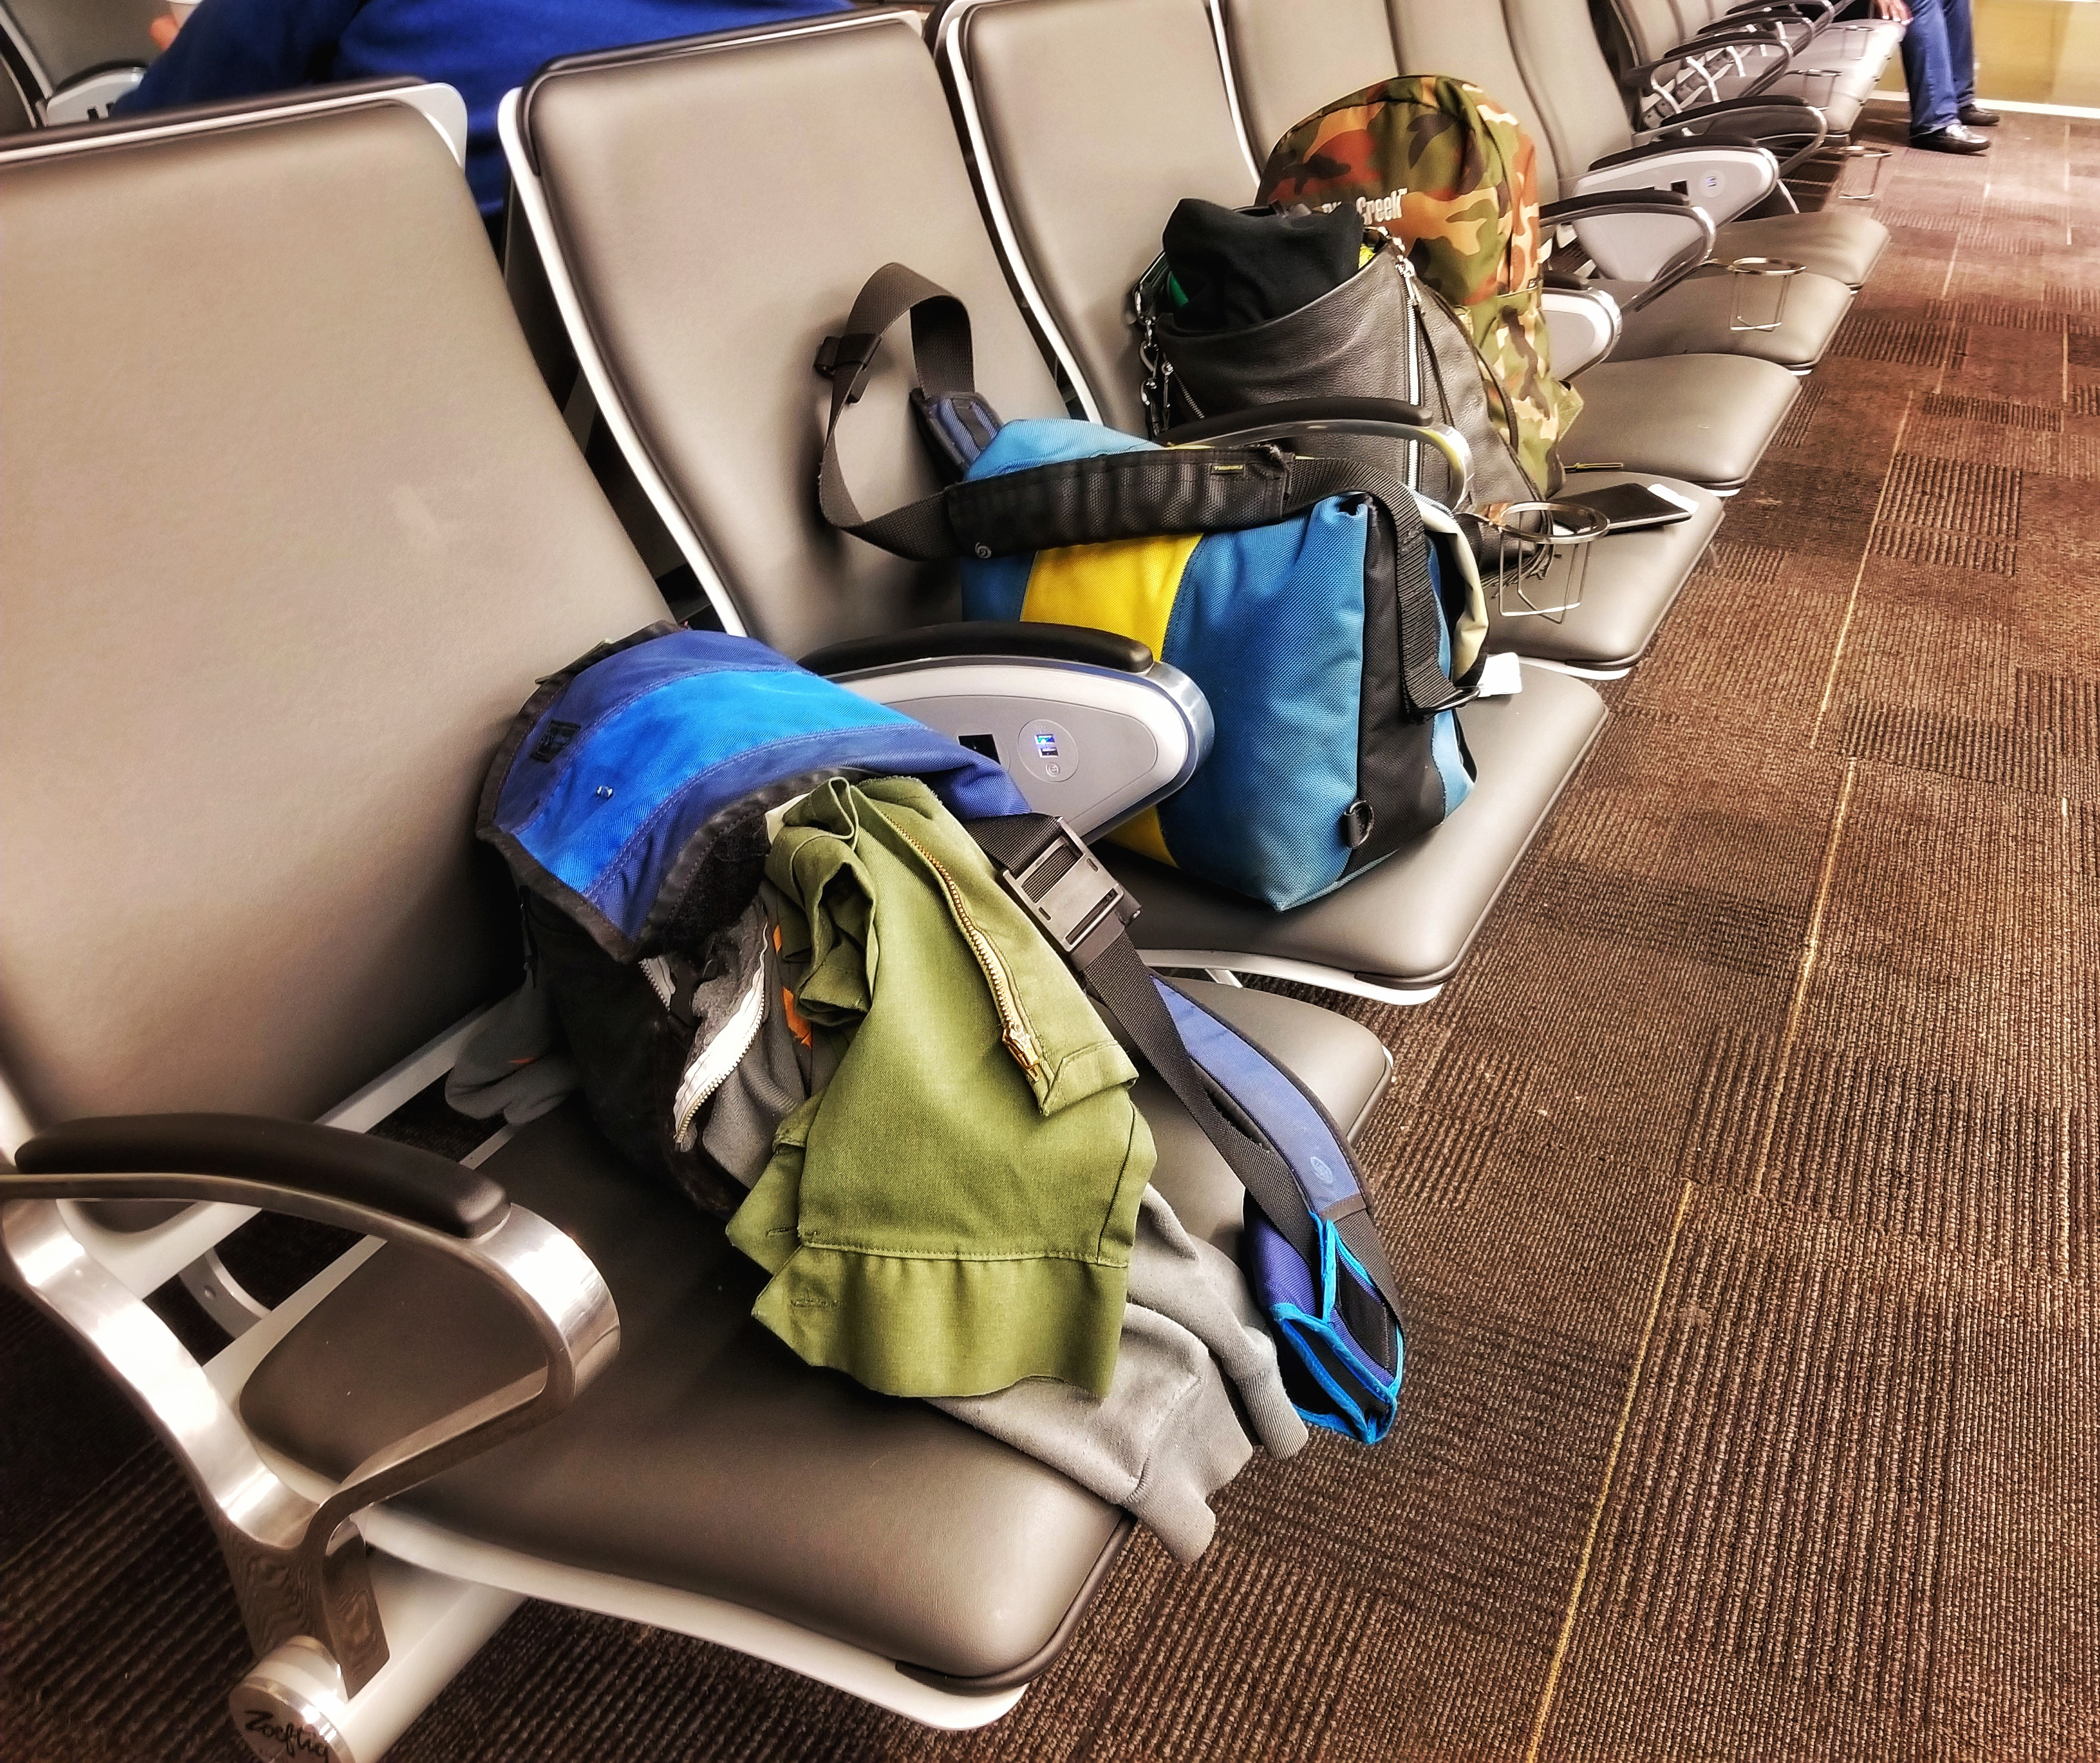 Four carry-ons in the San Diego airport